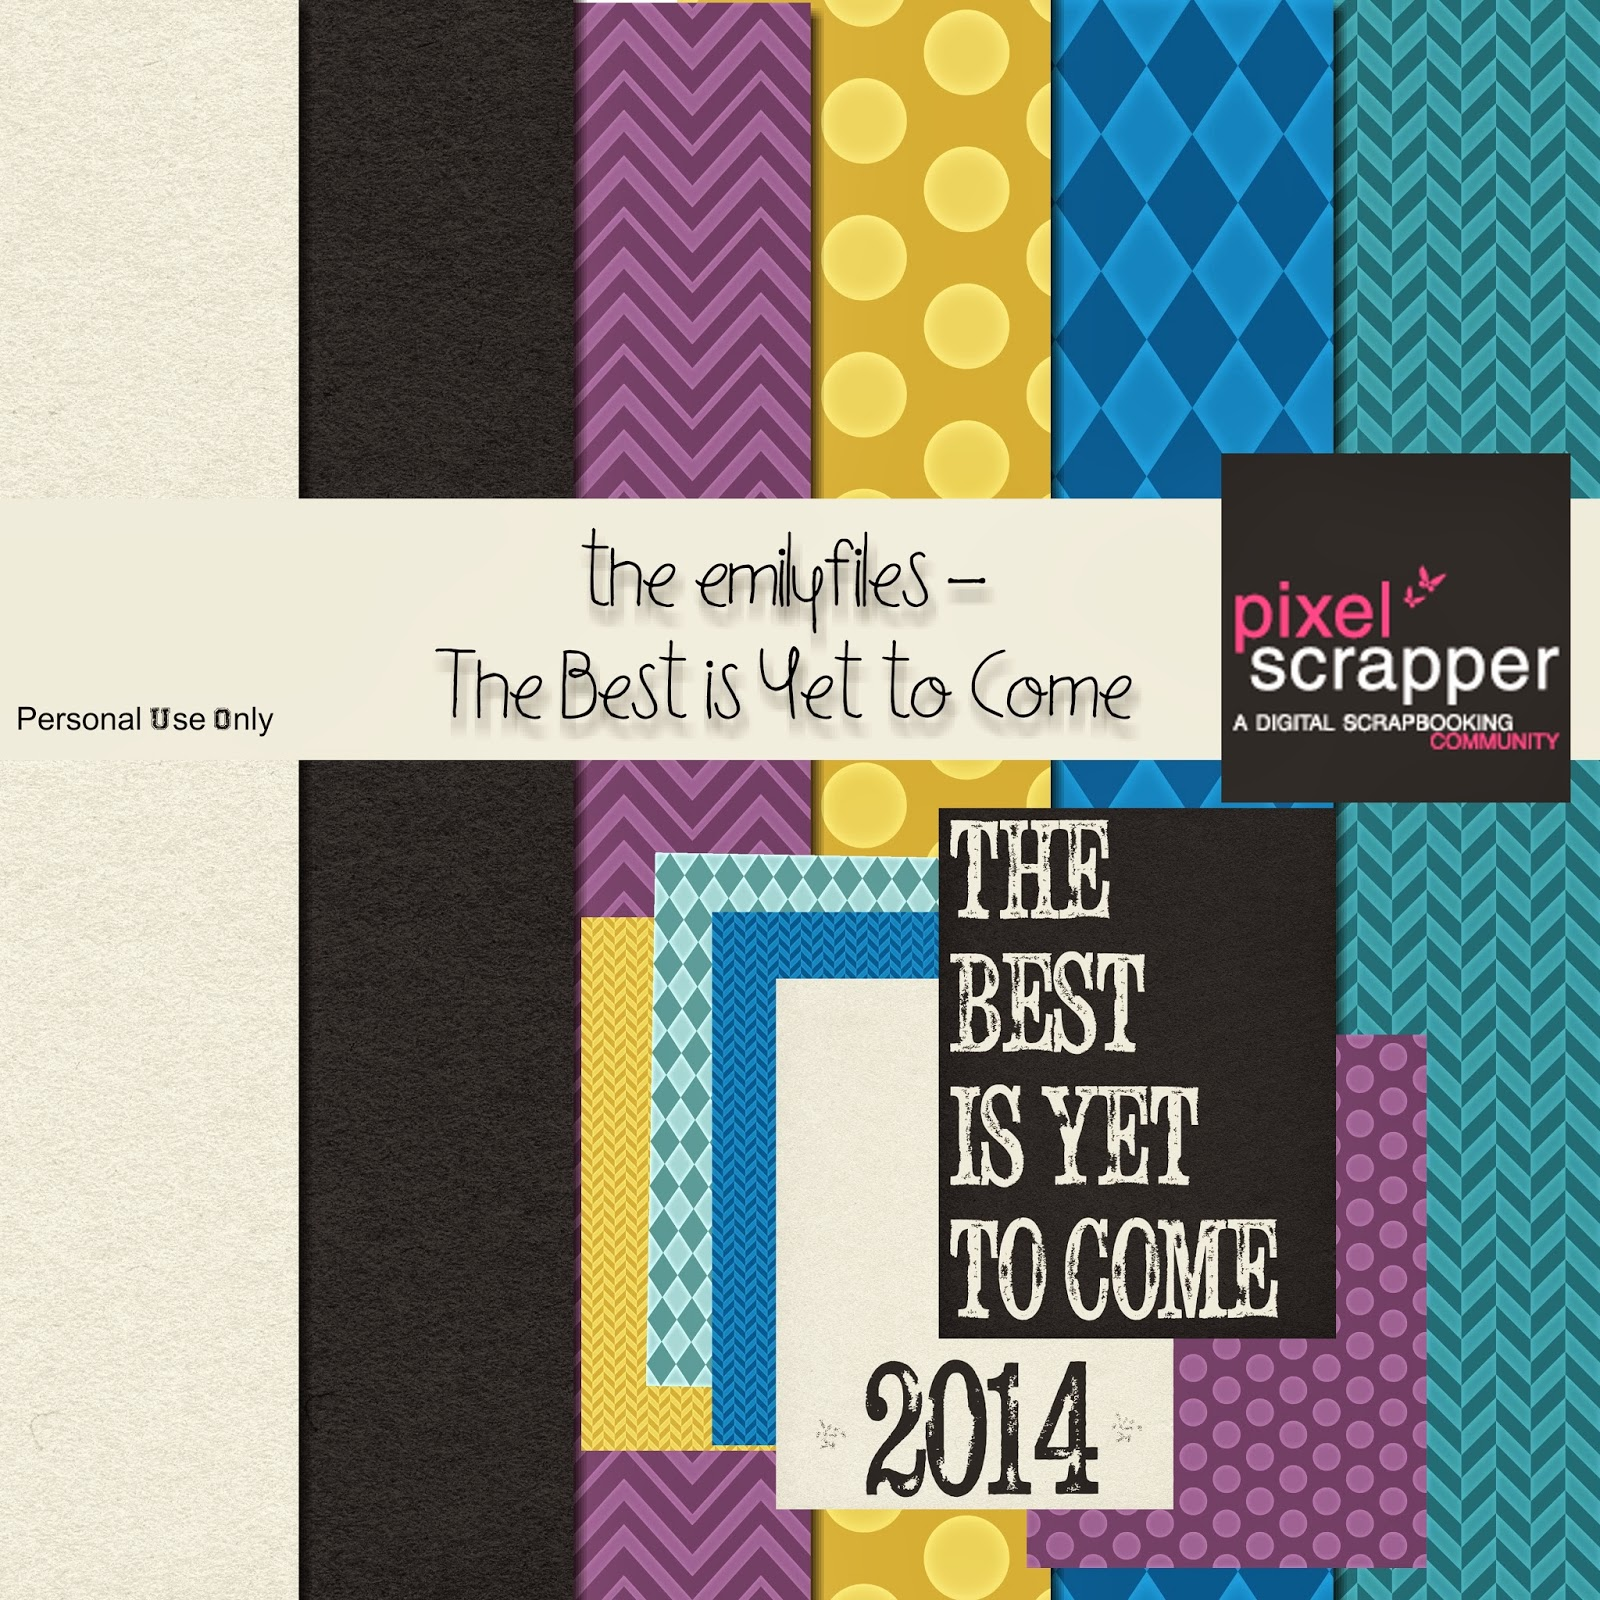 The Best is Yet to Come Digital Scrapbooking Kit